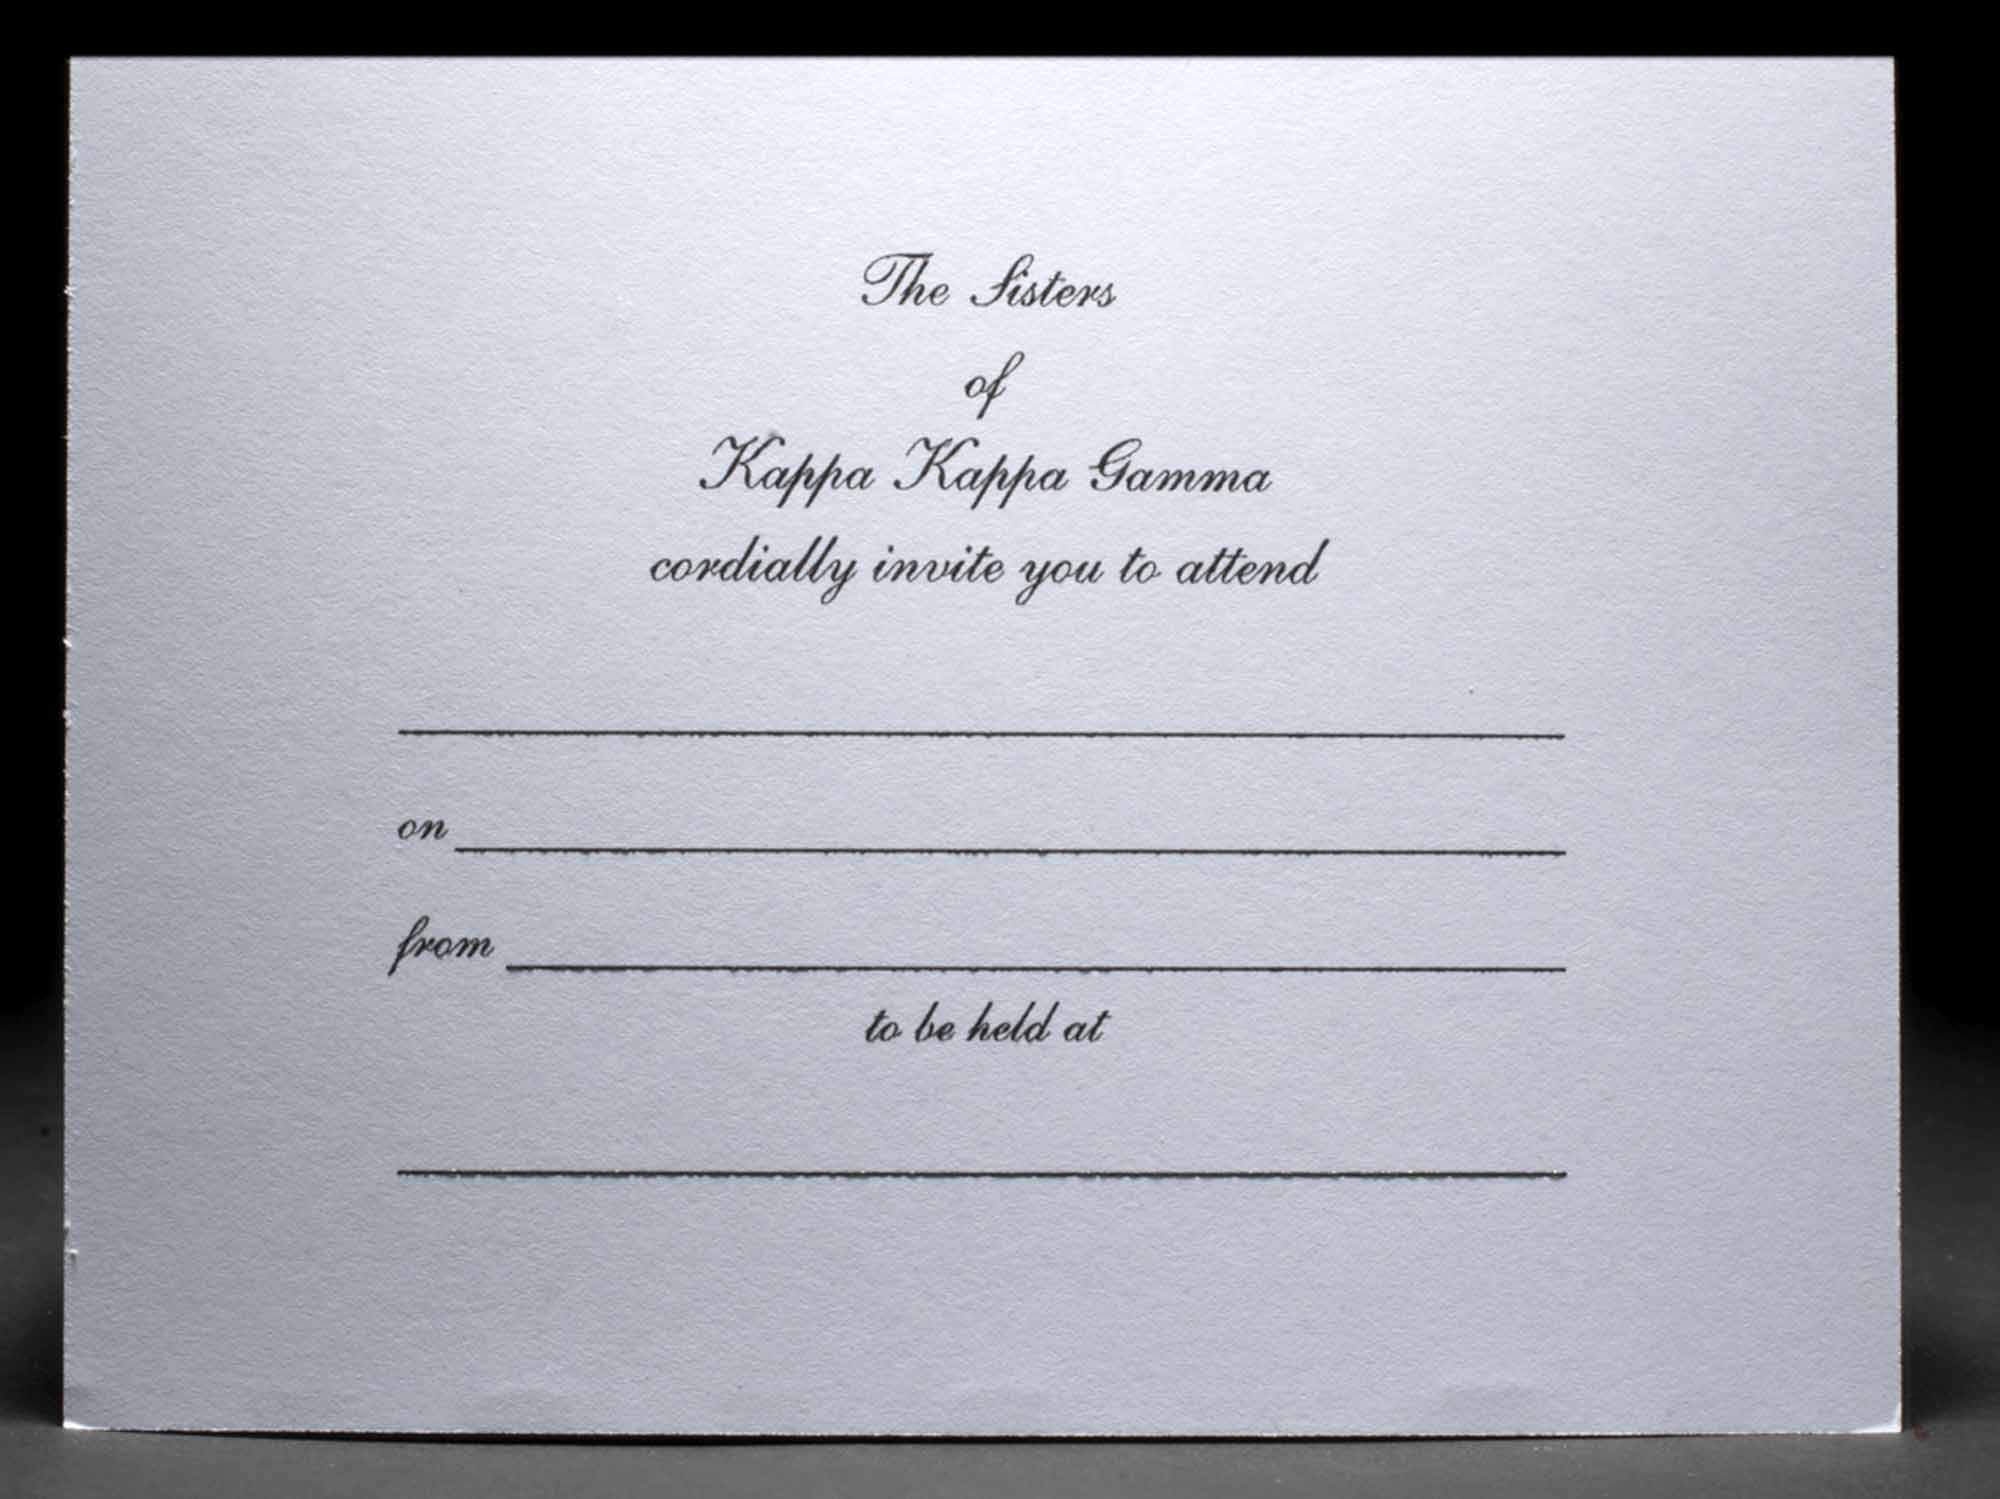 Formal Invitations Kappa Kappa Gamma 2